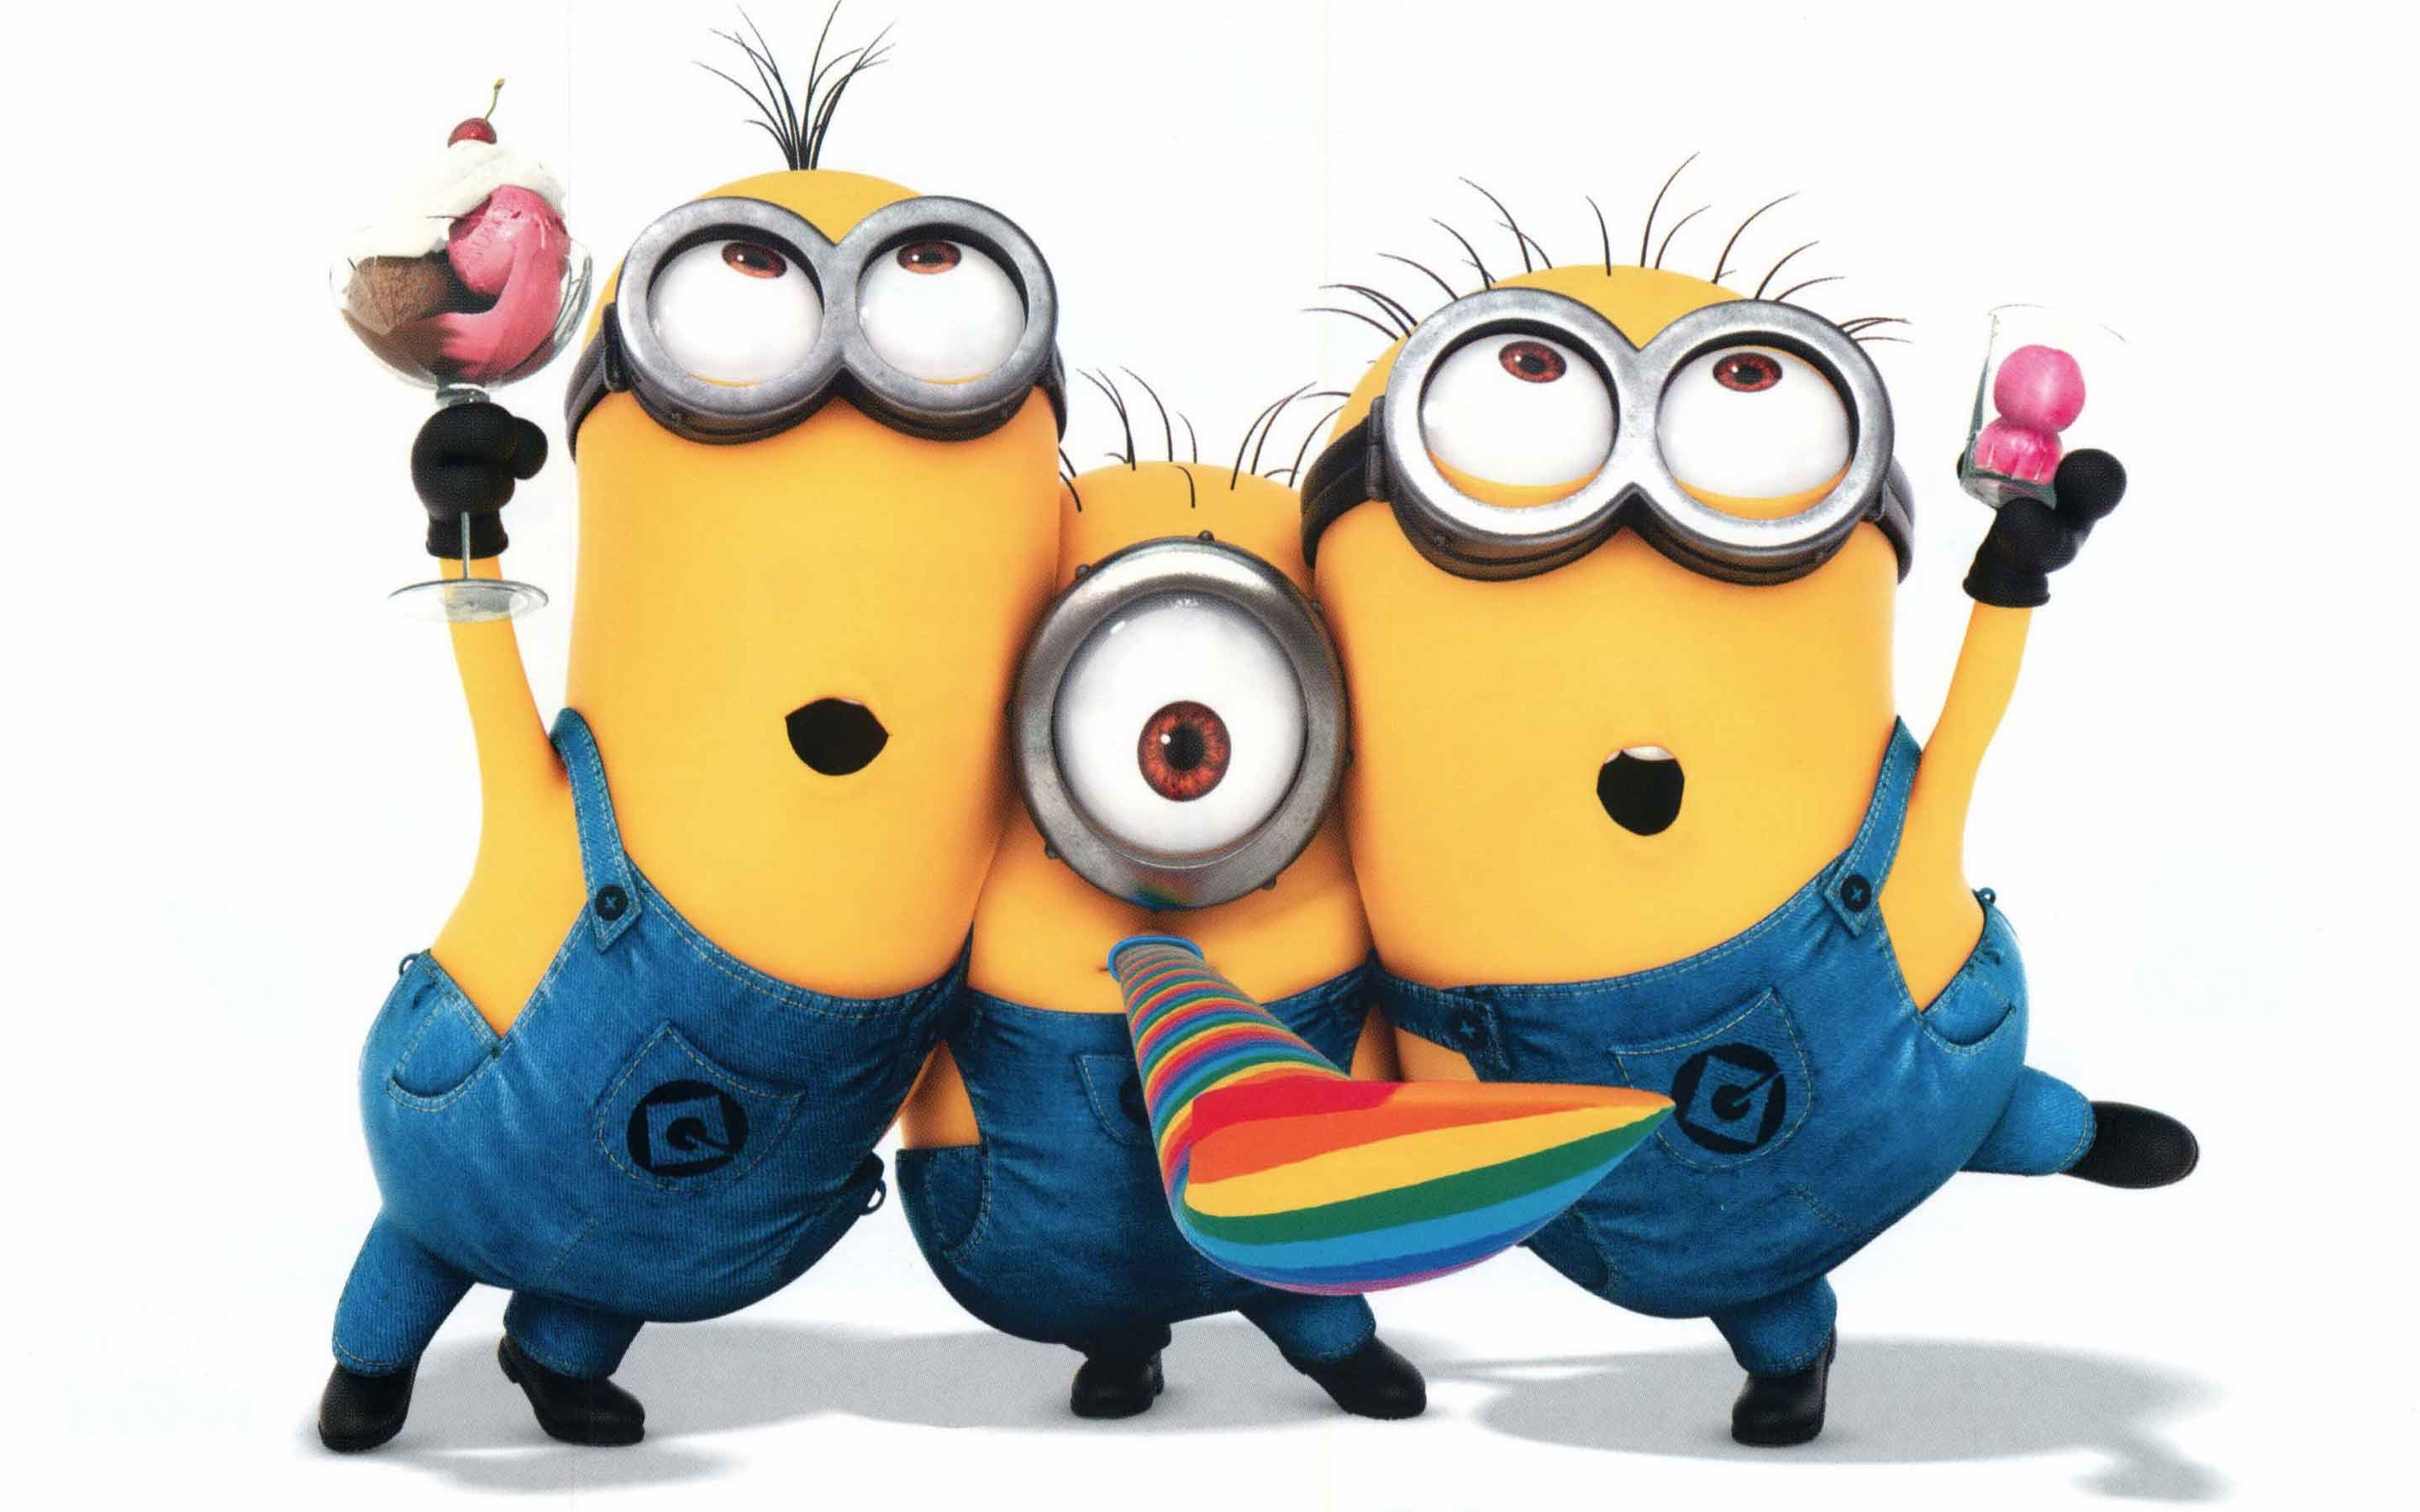 Cute Minions Wallpapers Collection 003